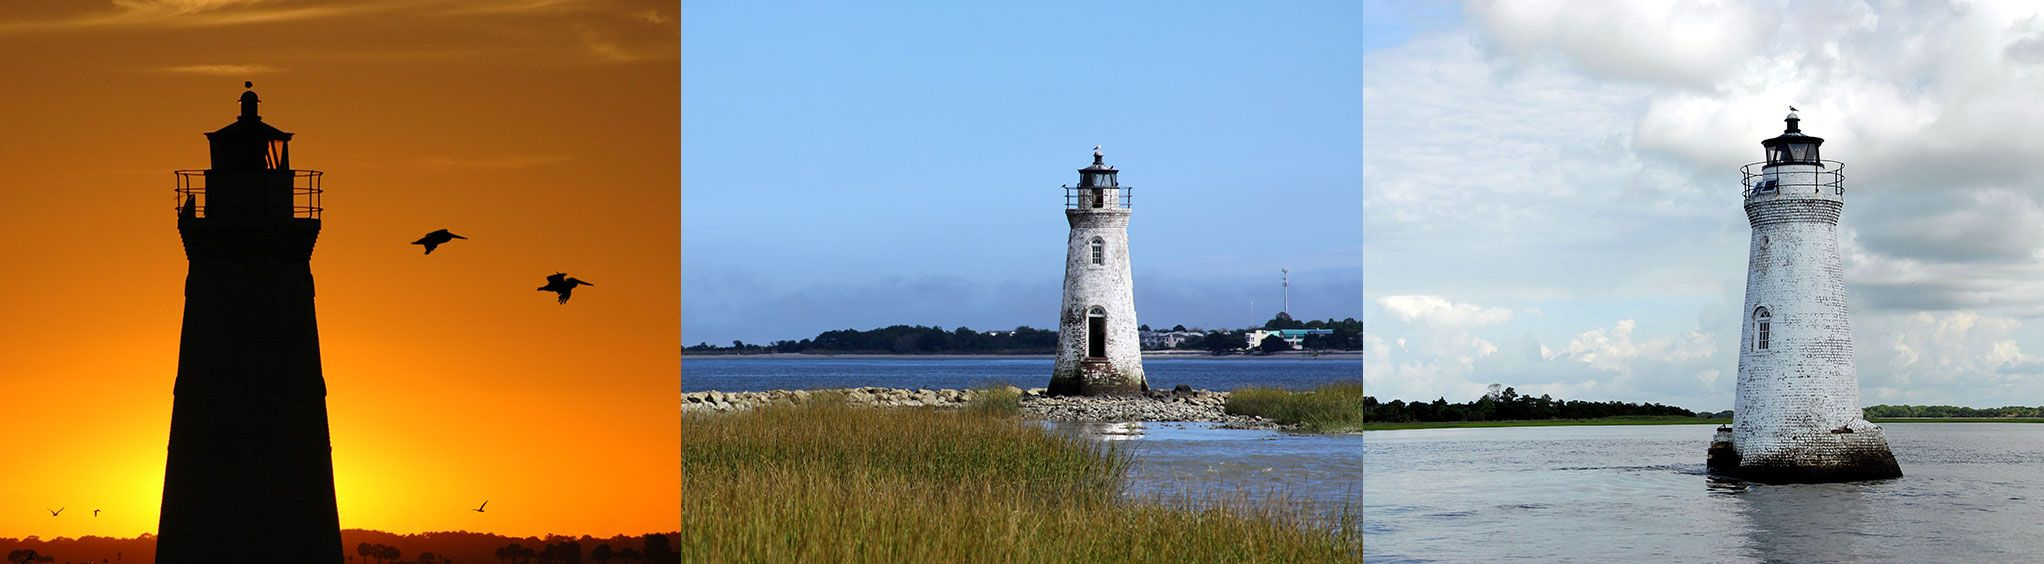 Cockspur Island Lighthouse near Savannah, GA